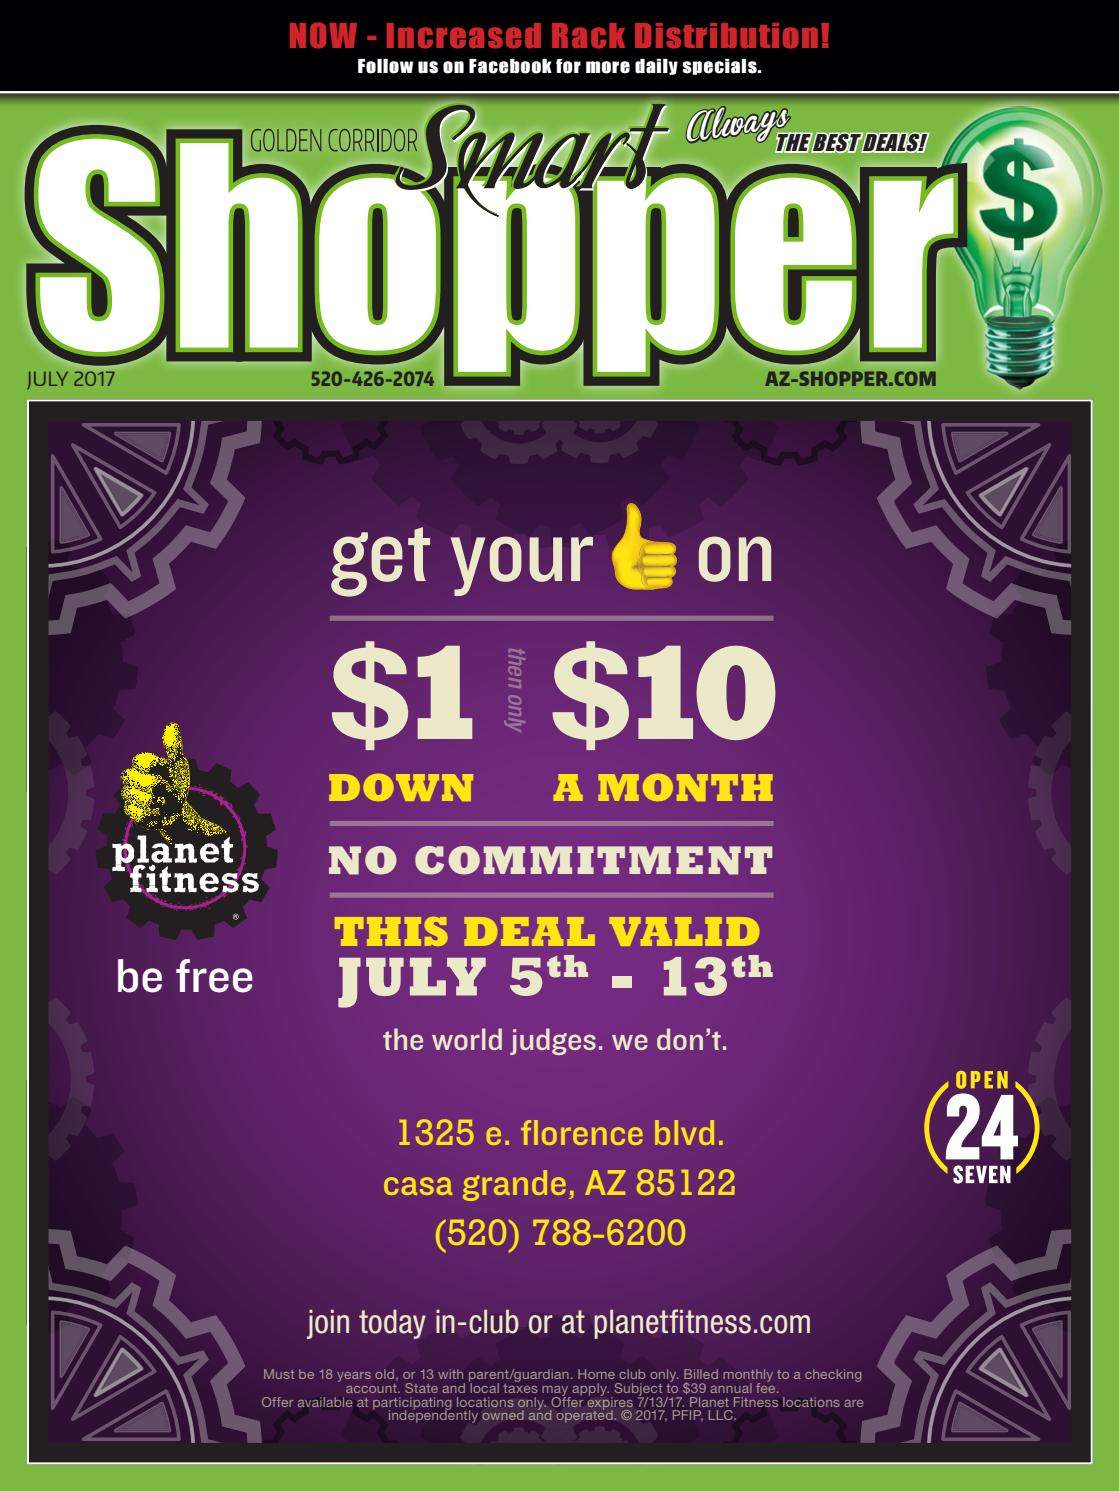 Planet Fitness Promo Code No Annual Fee [October 2020]